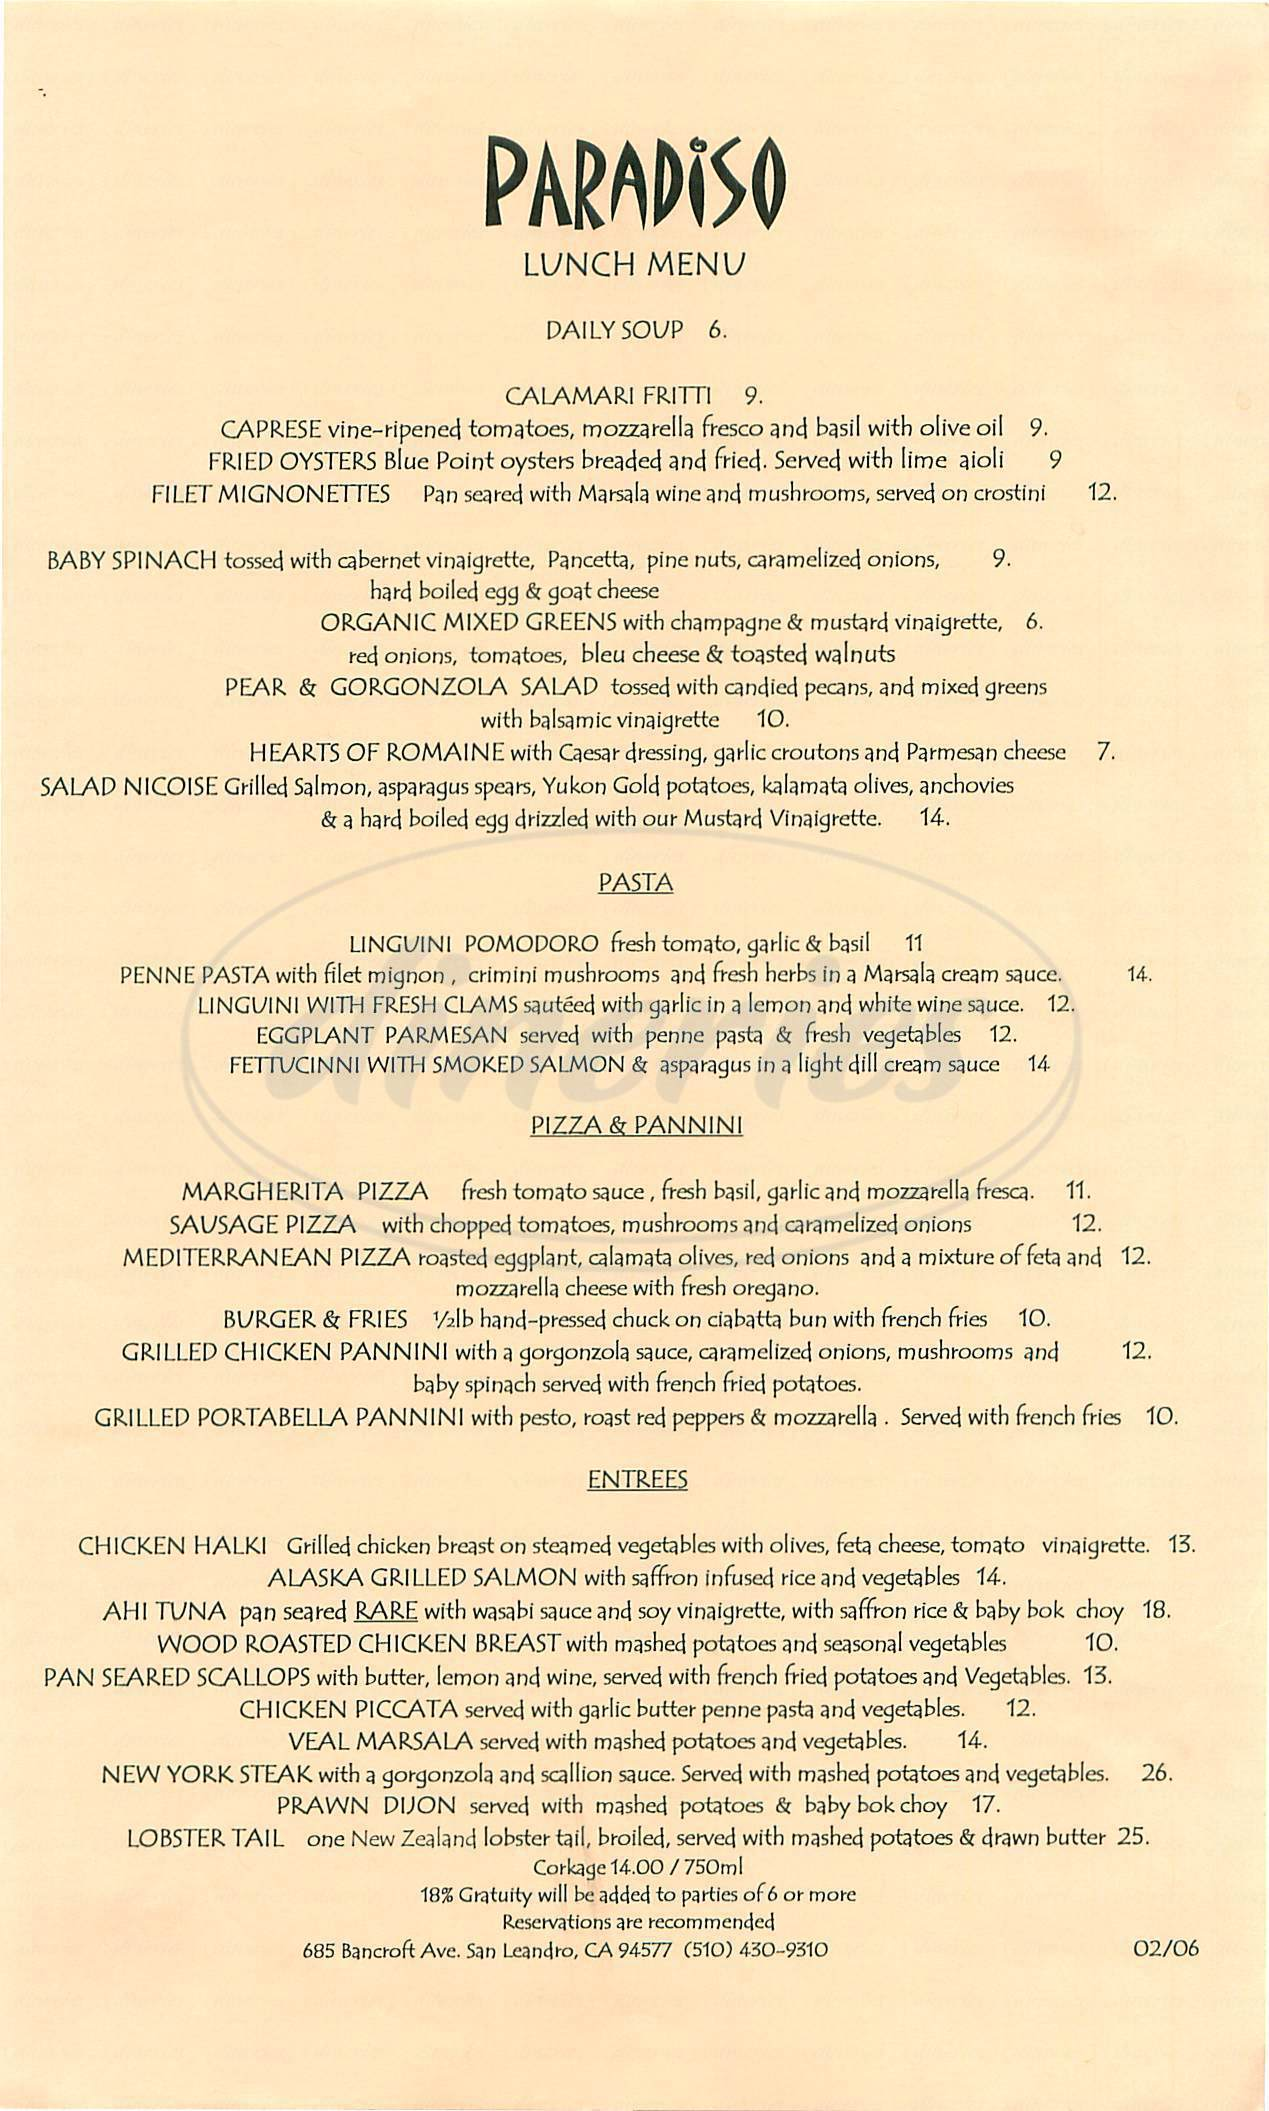 menu for Paradiso Restaurant